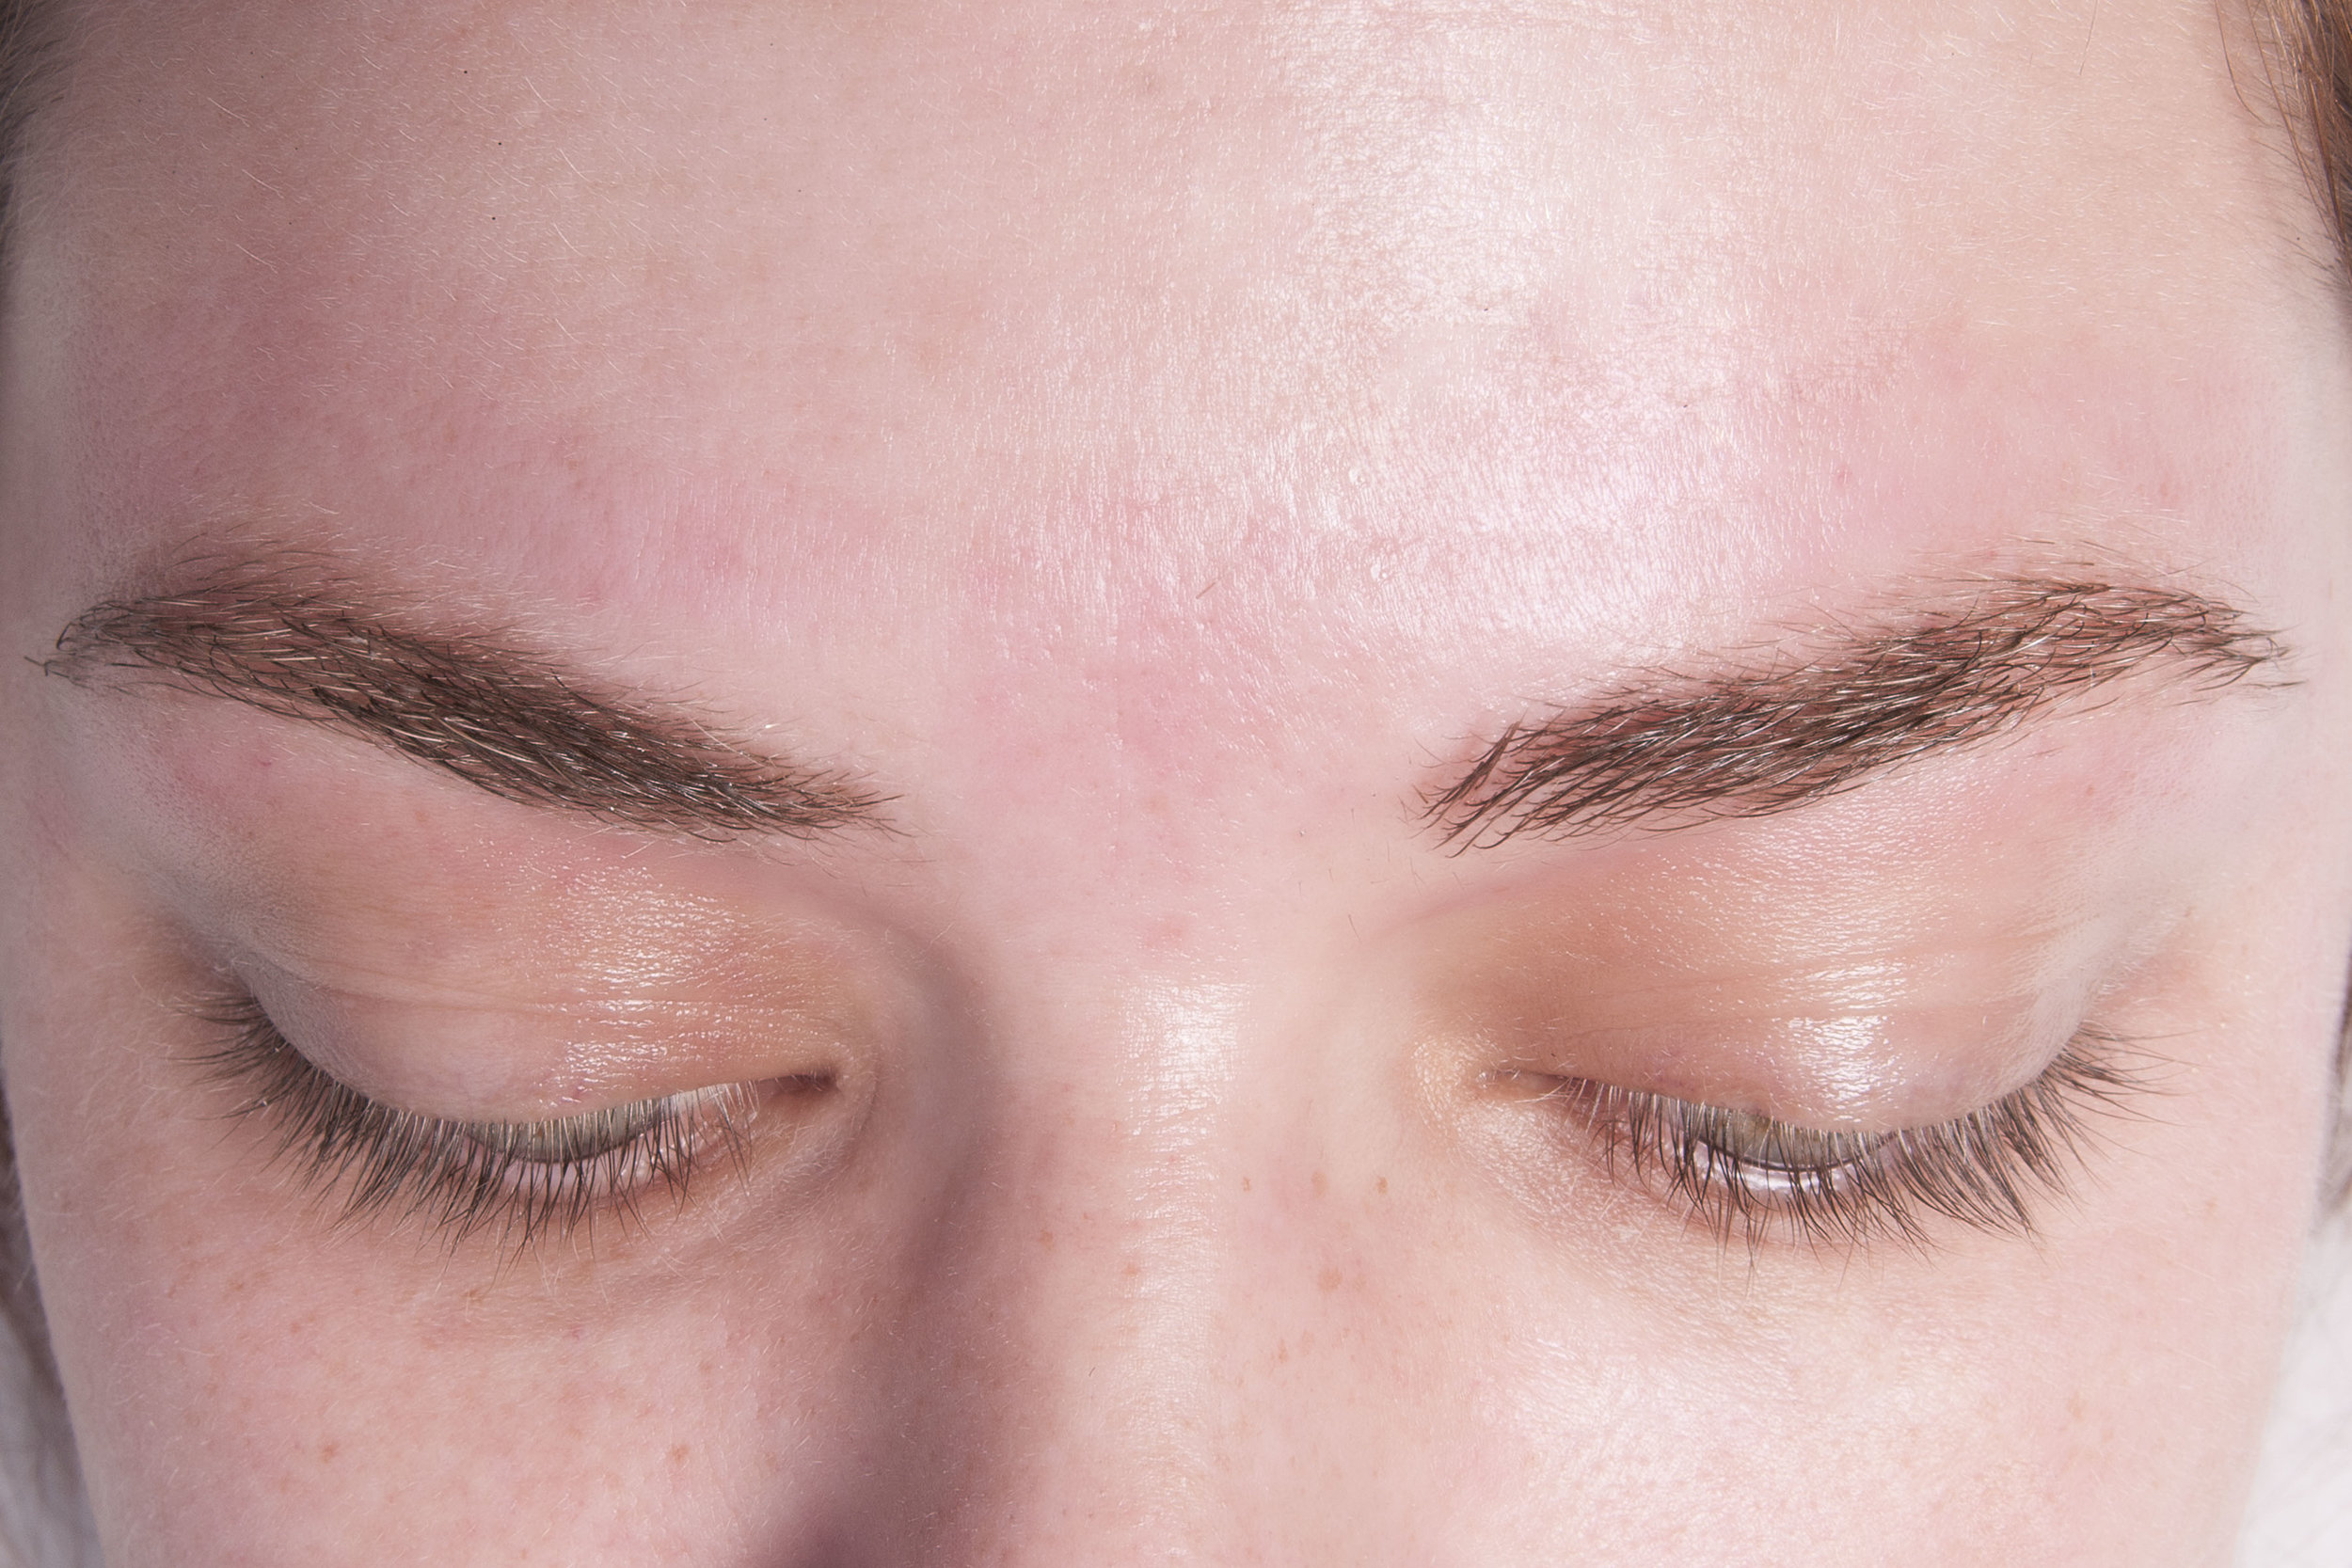 After an Eyebrow Wax with Shaping